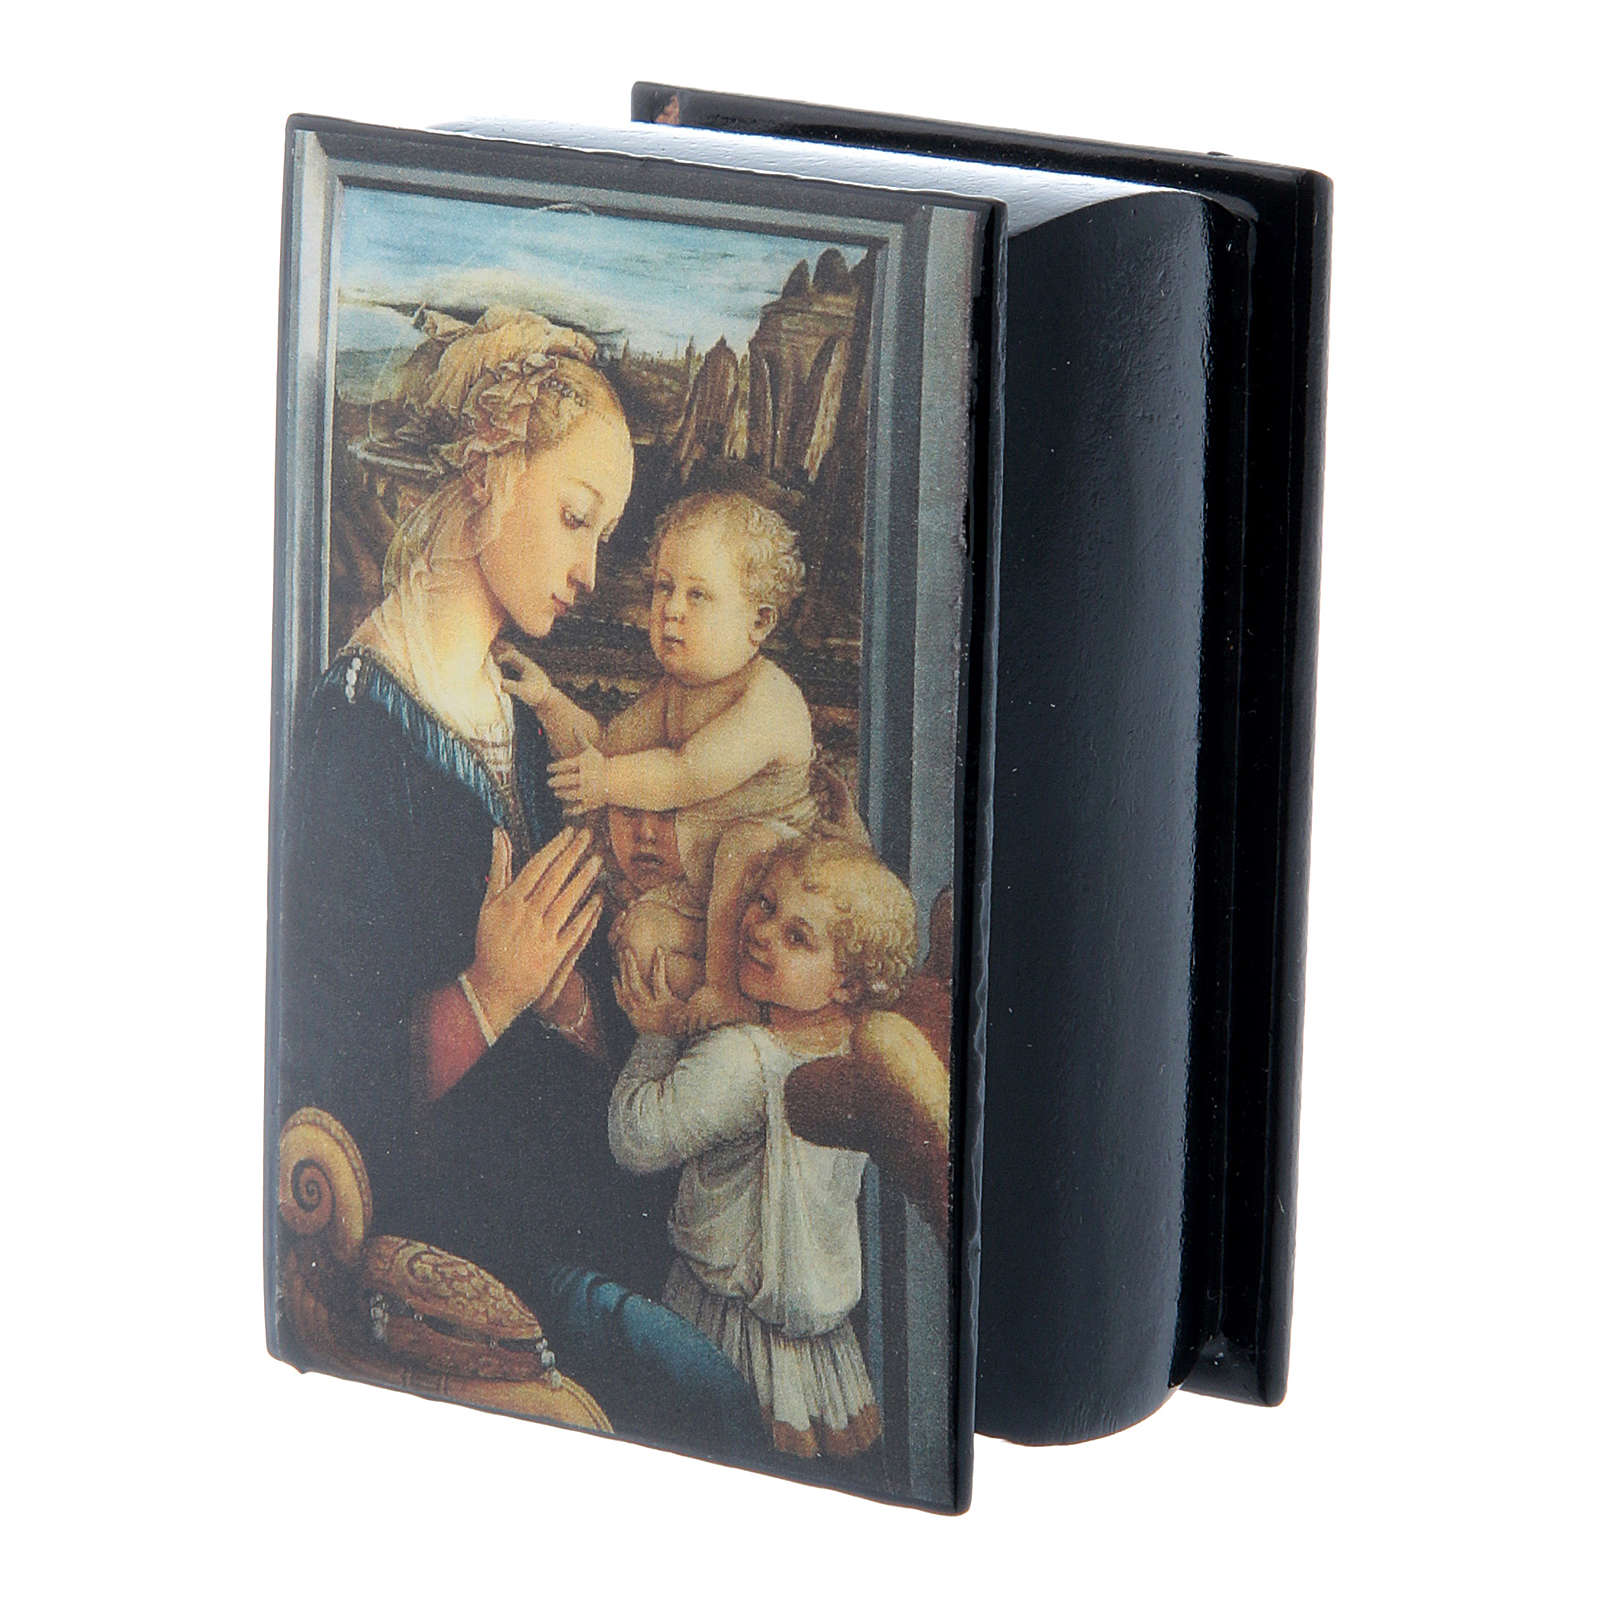 Russian papier-mâché and lacquer box Madonna and Child by Lippi 7x5 cm 4